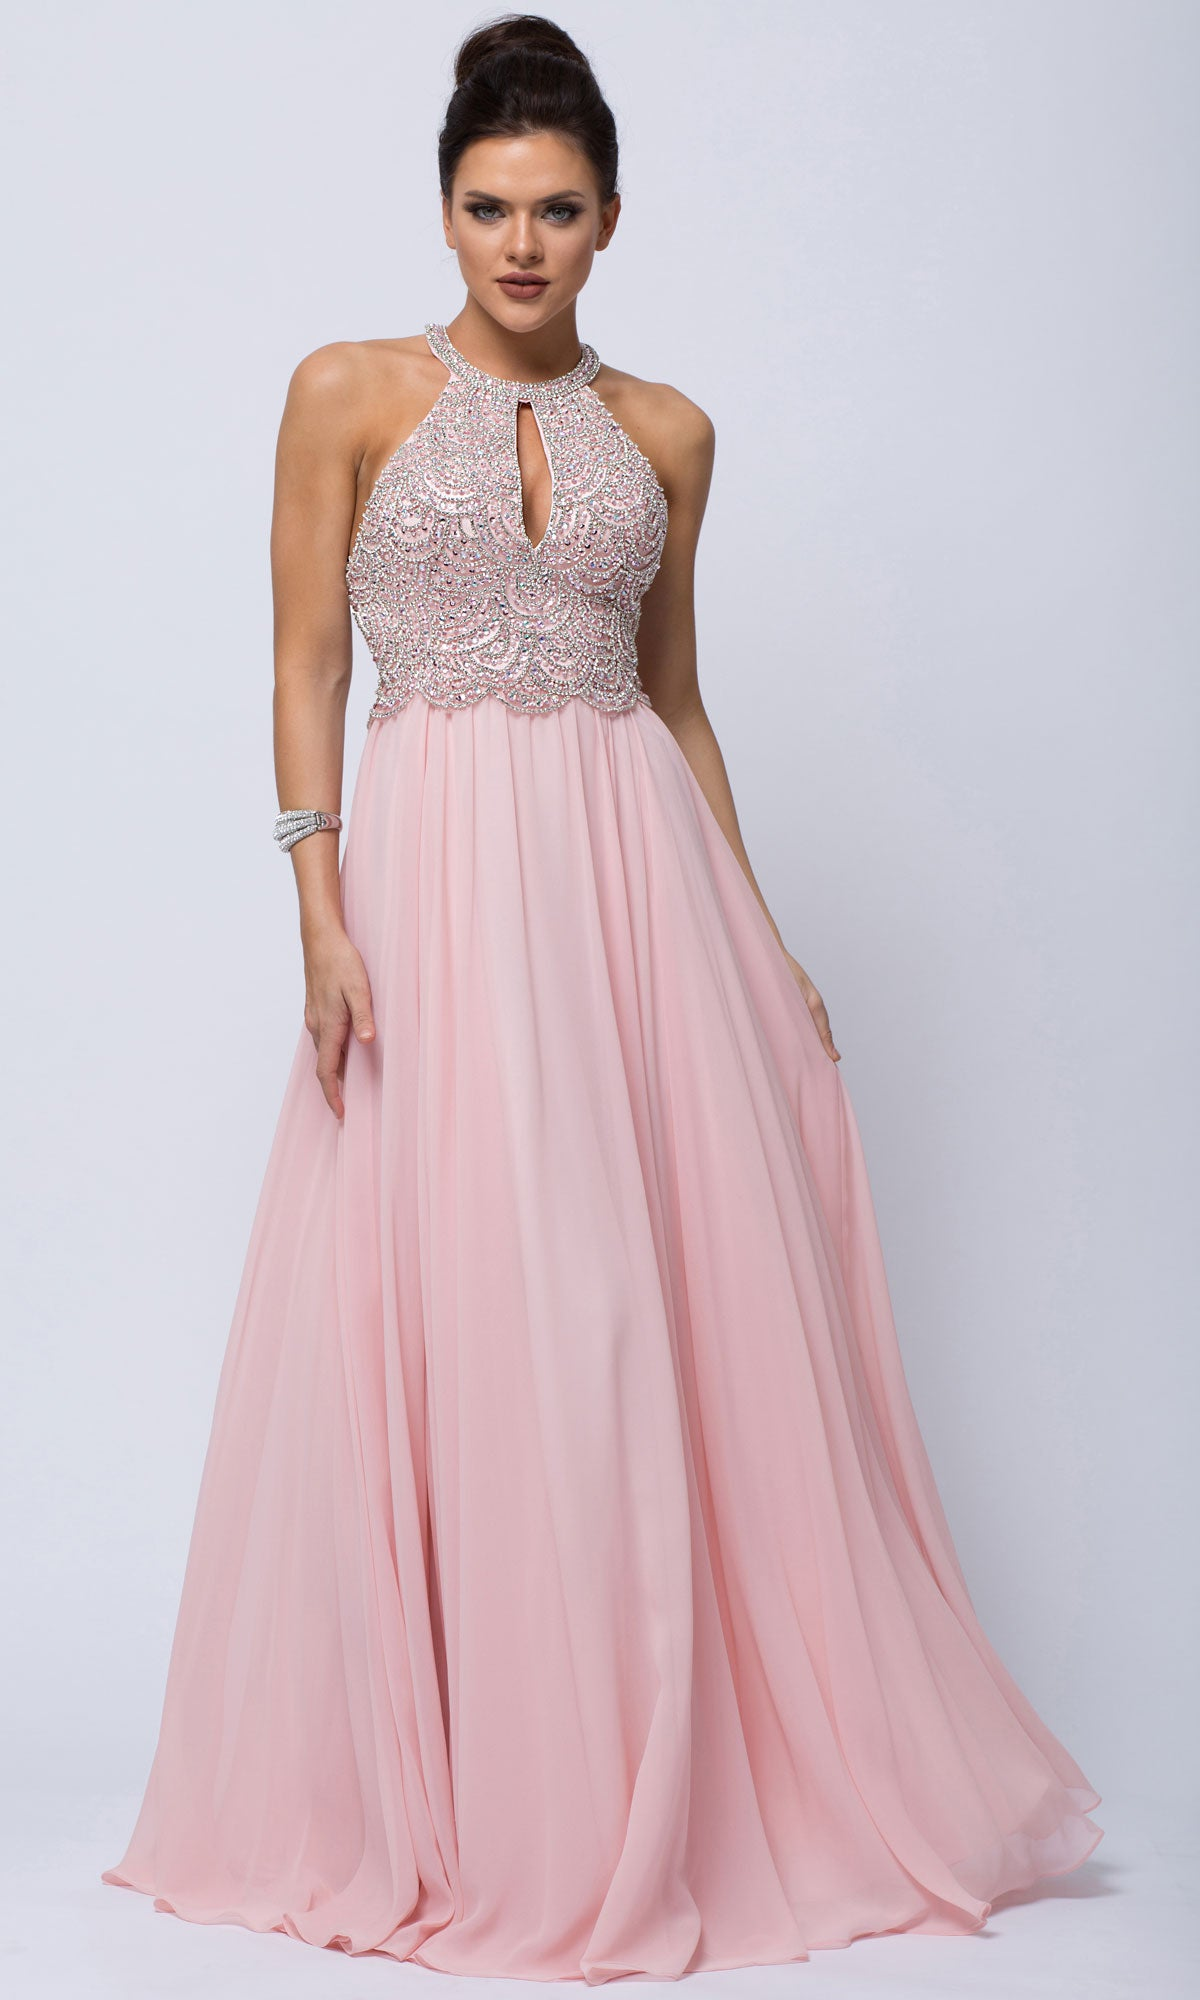 Main image of Sleeveless Beaded Prom Dress With High Neckline